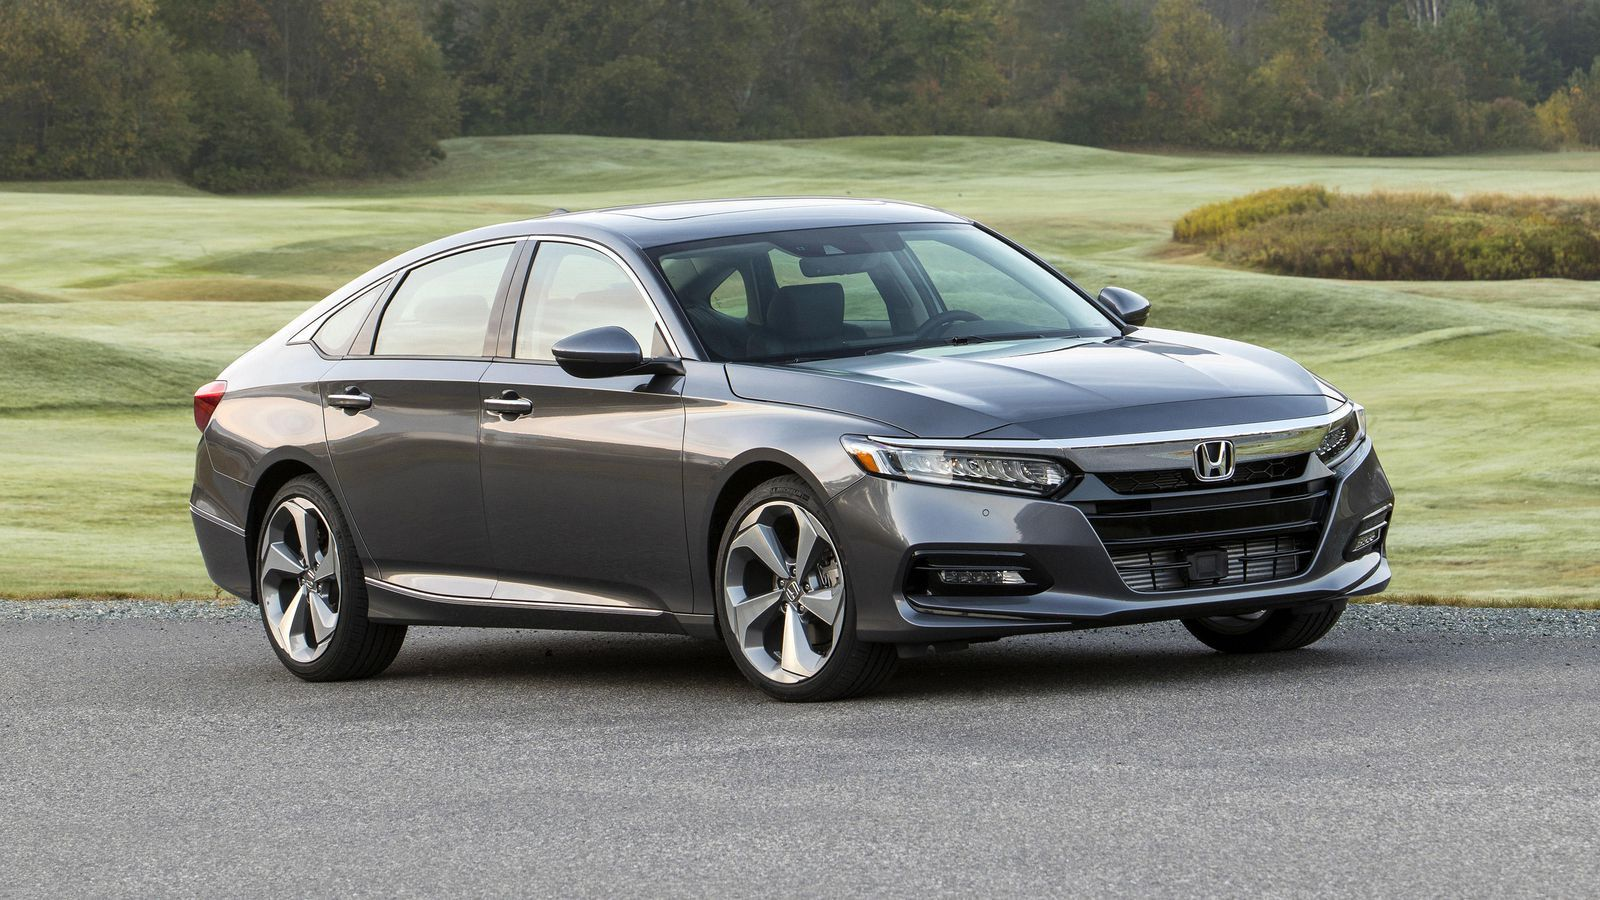 The best cars under 30,000 in 2020 Best suv cars, Chevy